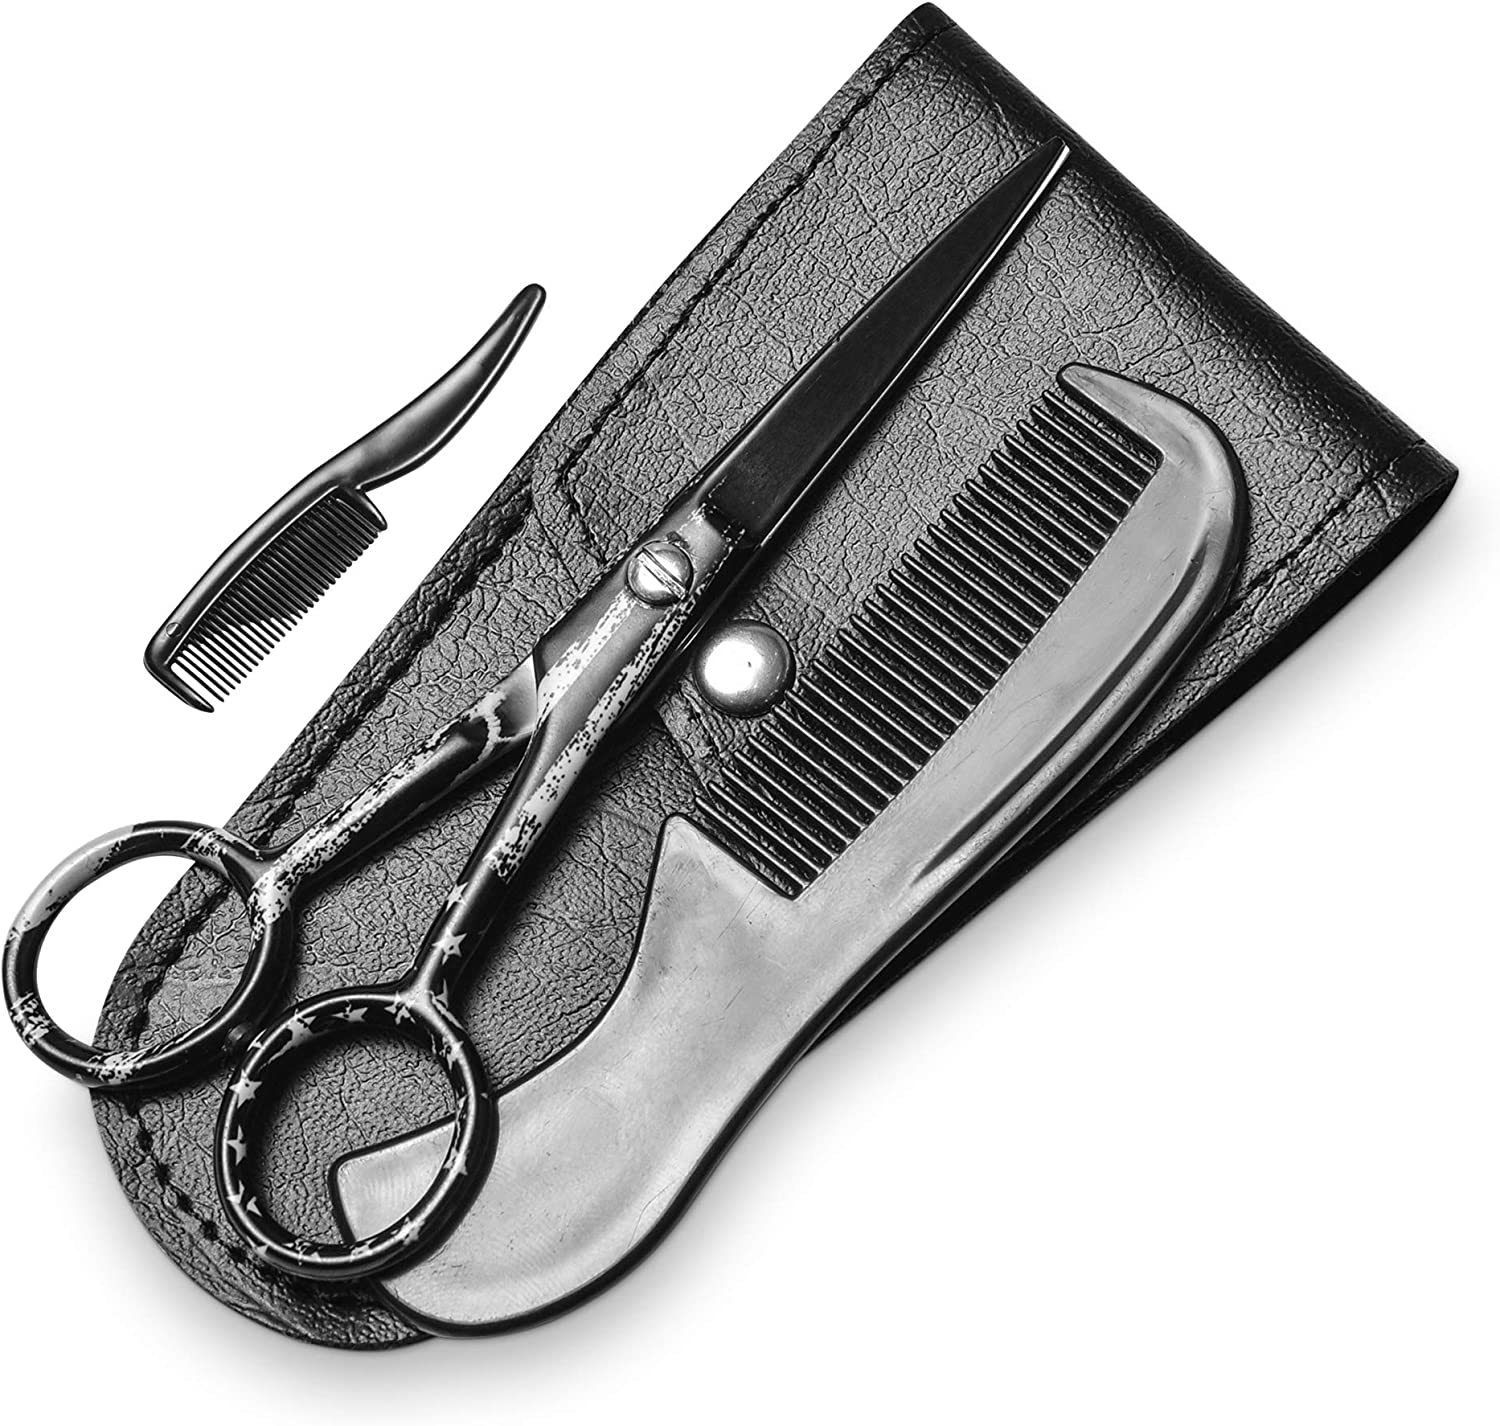 ONTAKI Beard Mustache Scissors With Pouch Comb - Th sold out Carrying Sale item